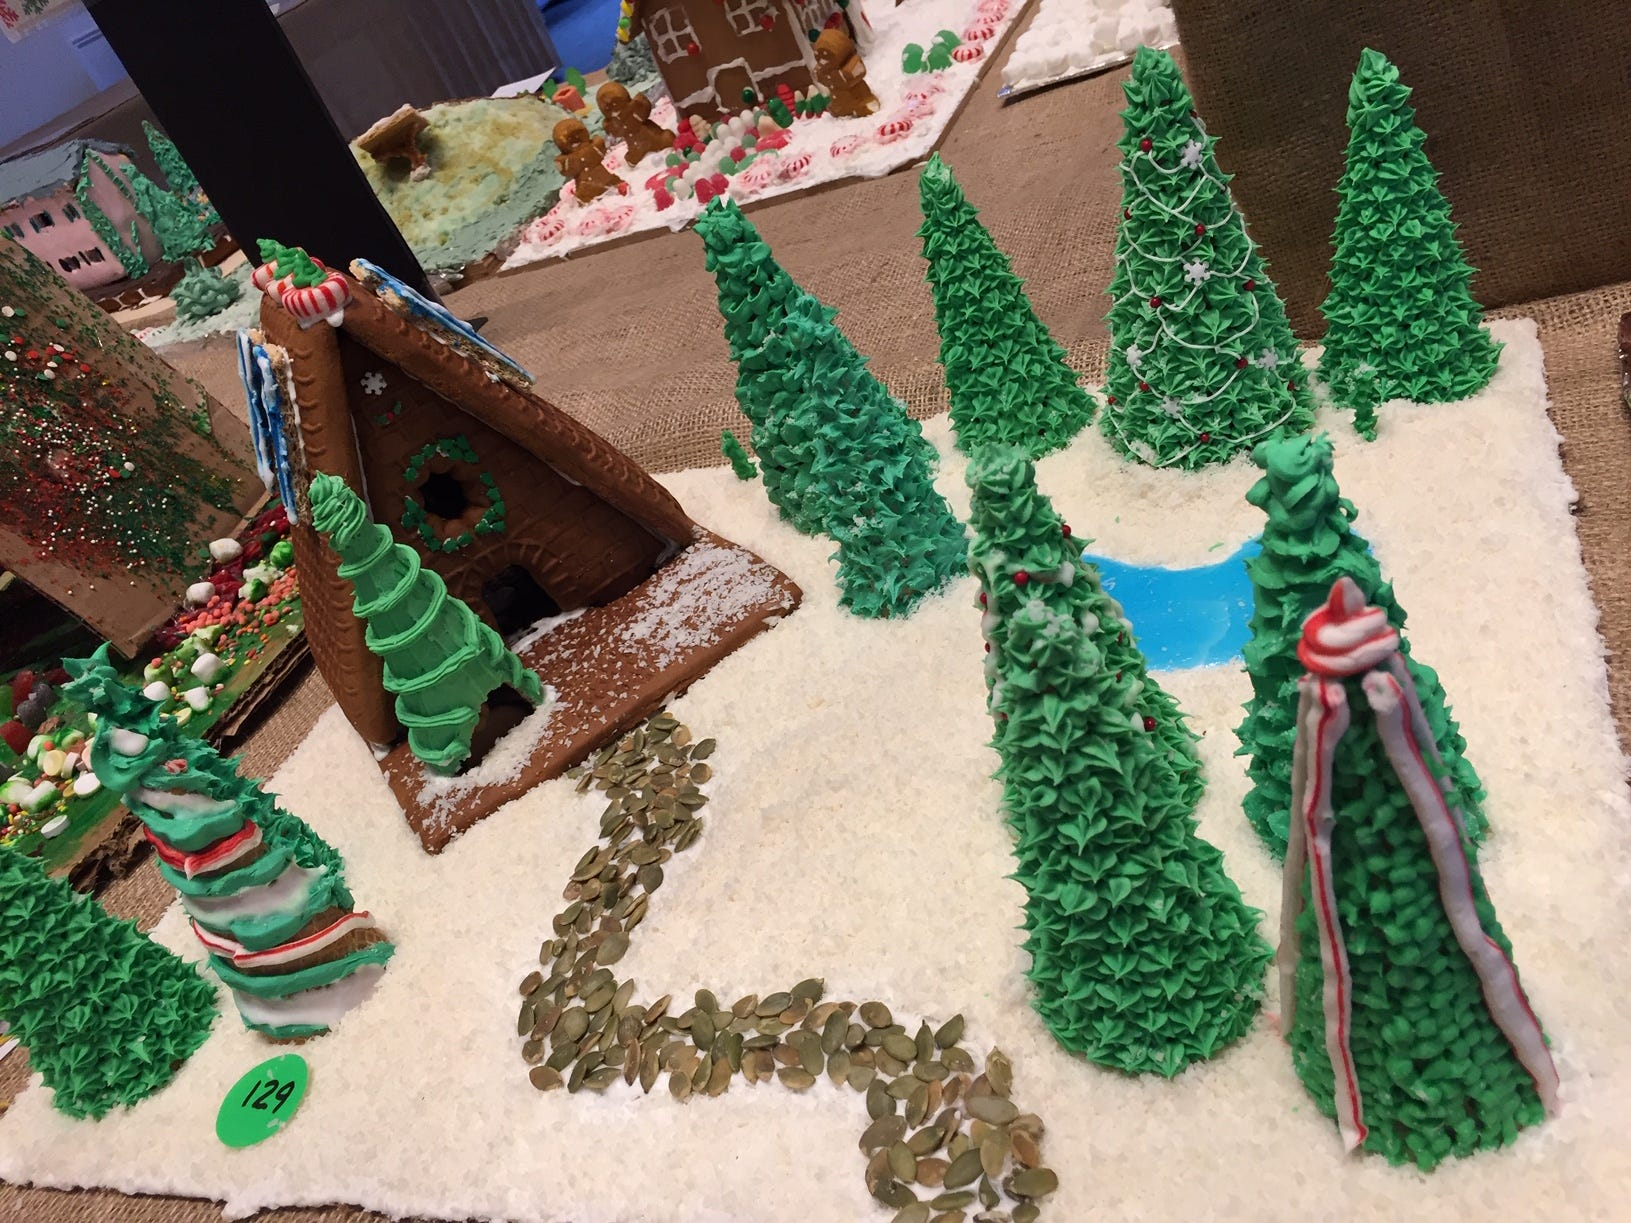 """A Walk Through the Woods"" by Megan of Summit, grade 12, at the Gingerbread Wonderland at the Frelinghuysen Arboretum. Child category."